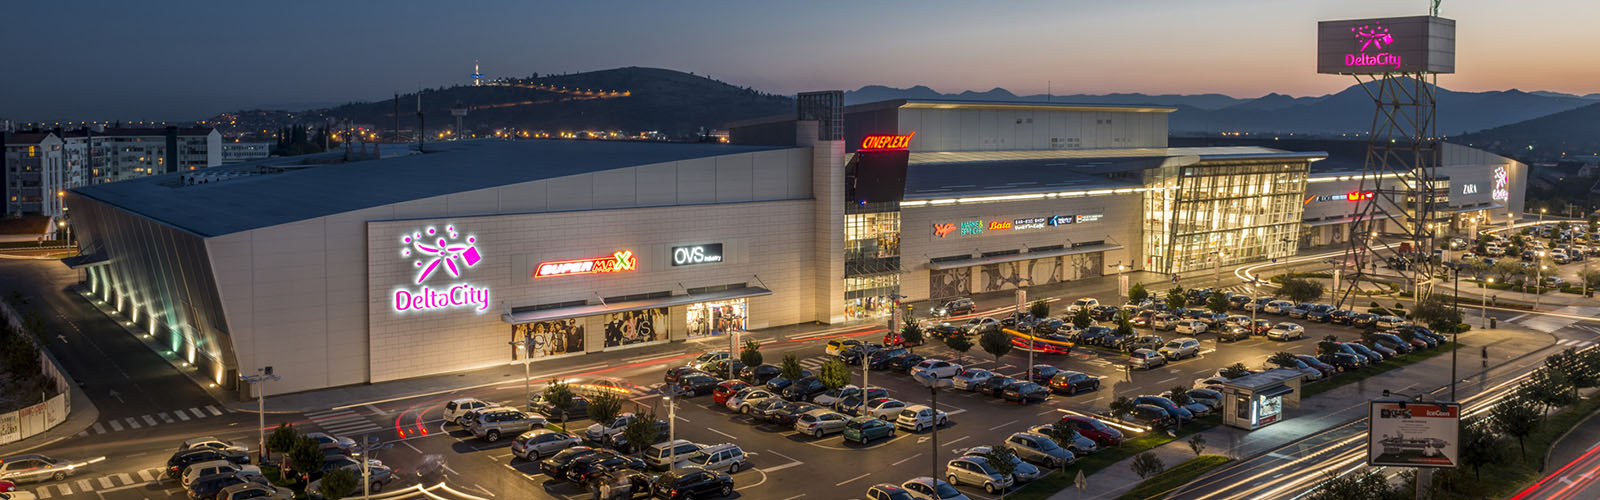 Concierge Belgrade | Delta City shopping mall